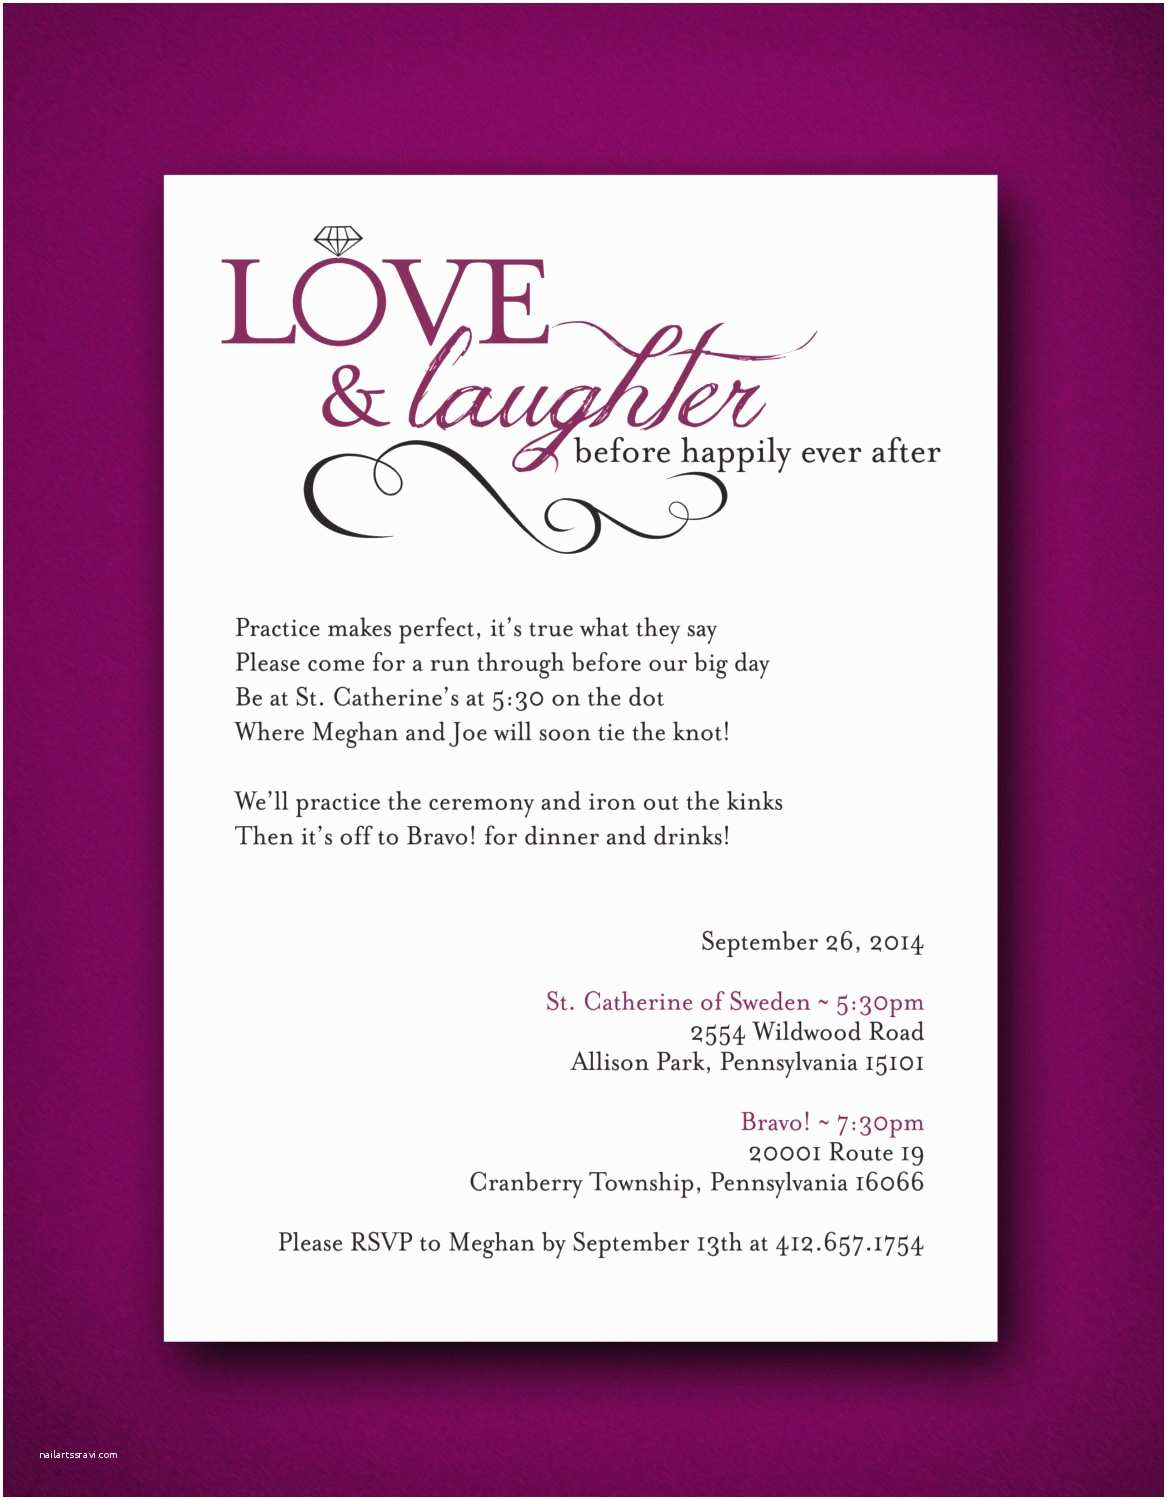 Happily Ever After Wedding Invitations Love & Laughter Before Happily Ever After Wedding